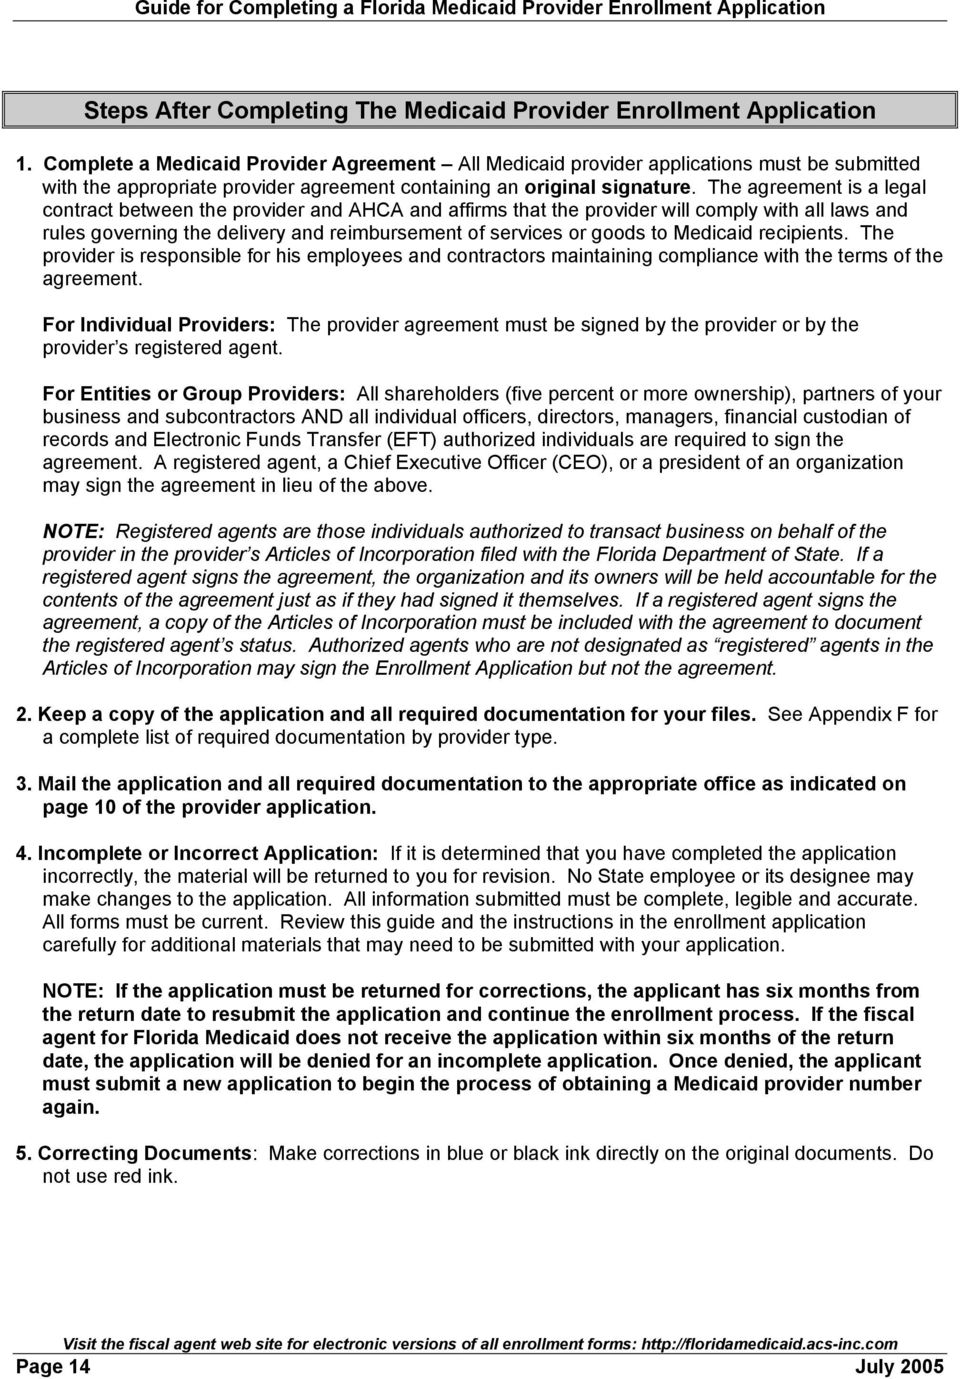 Guide For Completing A Medicaid Provider Enrollment Application Pdf